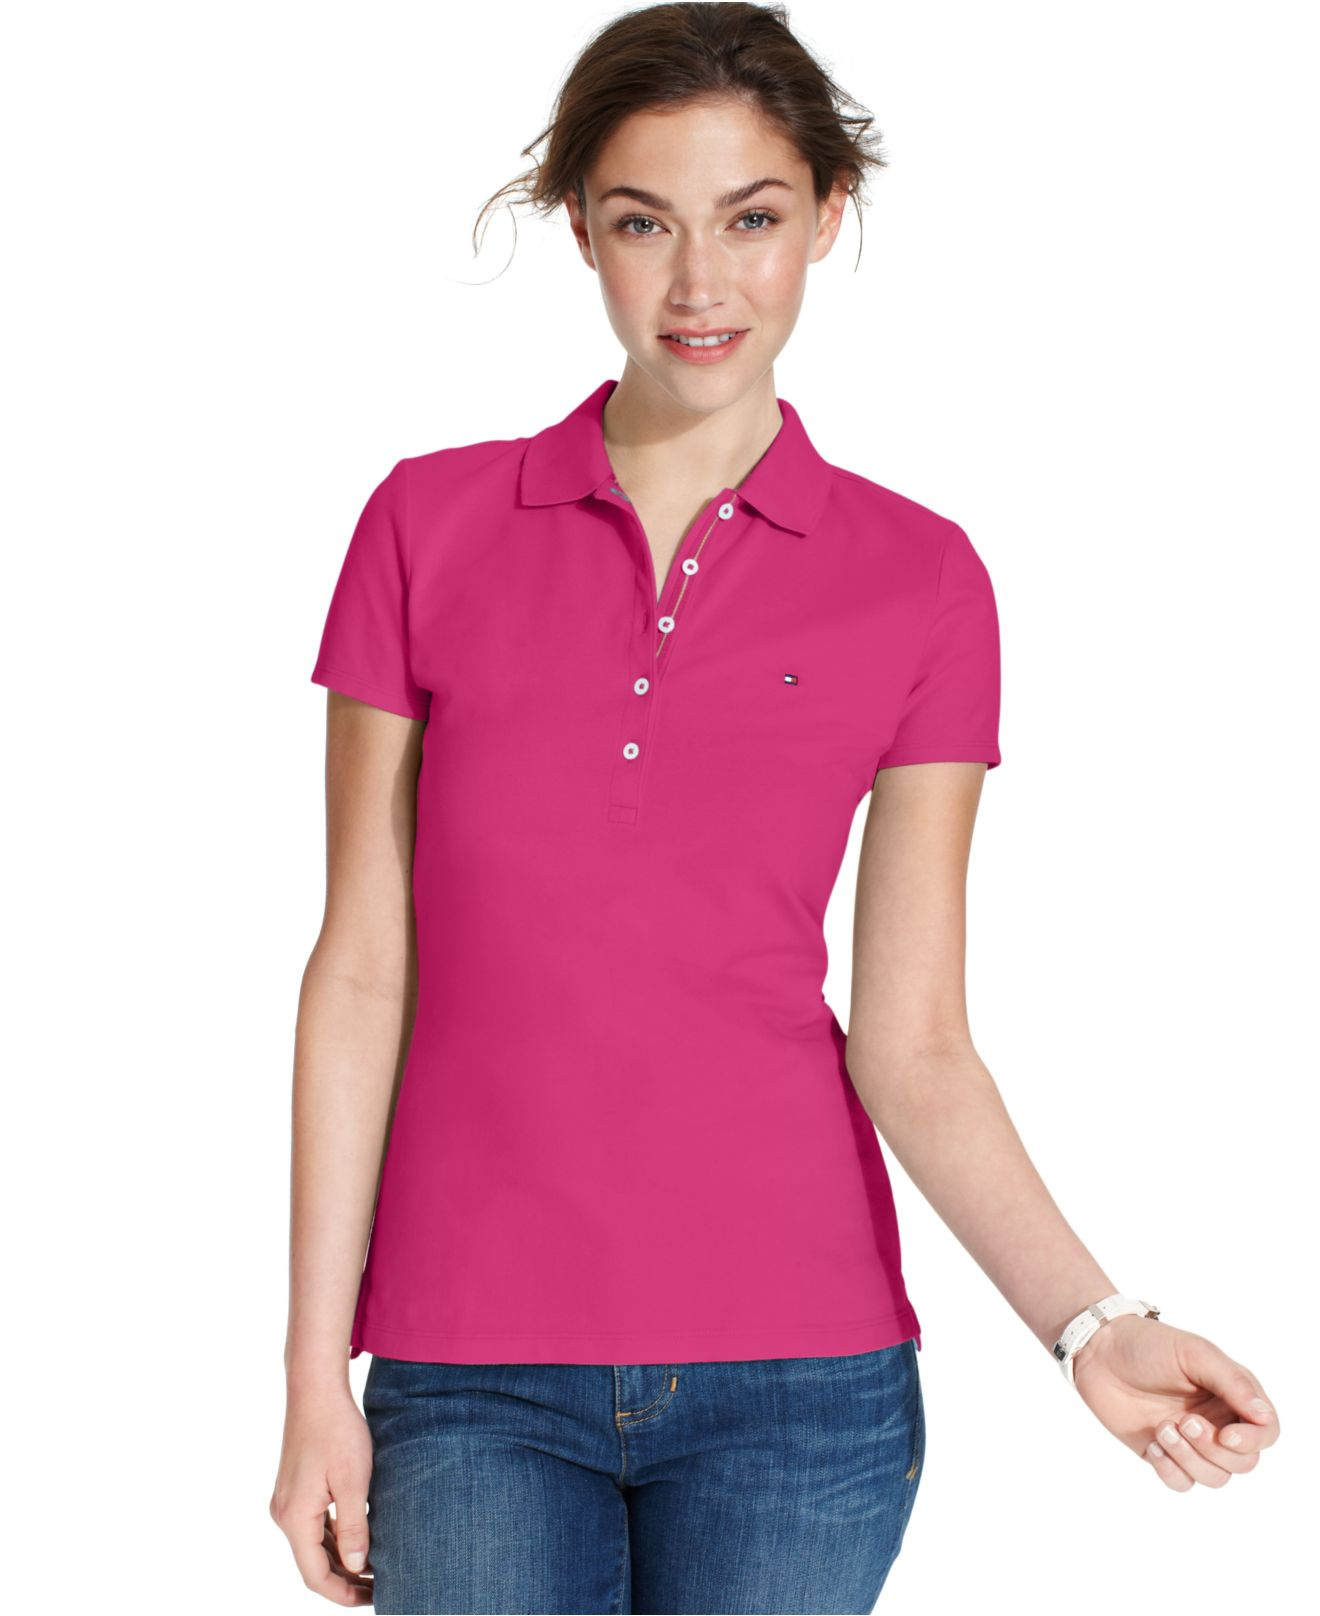 bddadcb9d53 Lyst - Tommy Hilfiger Shortsleeve Polo Top in Pink